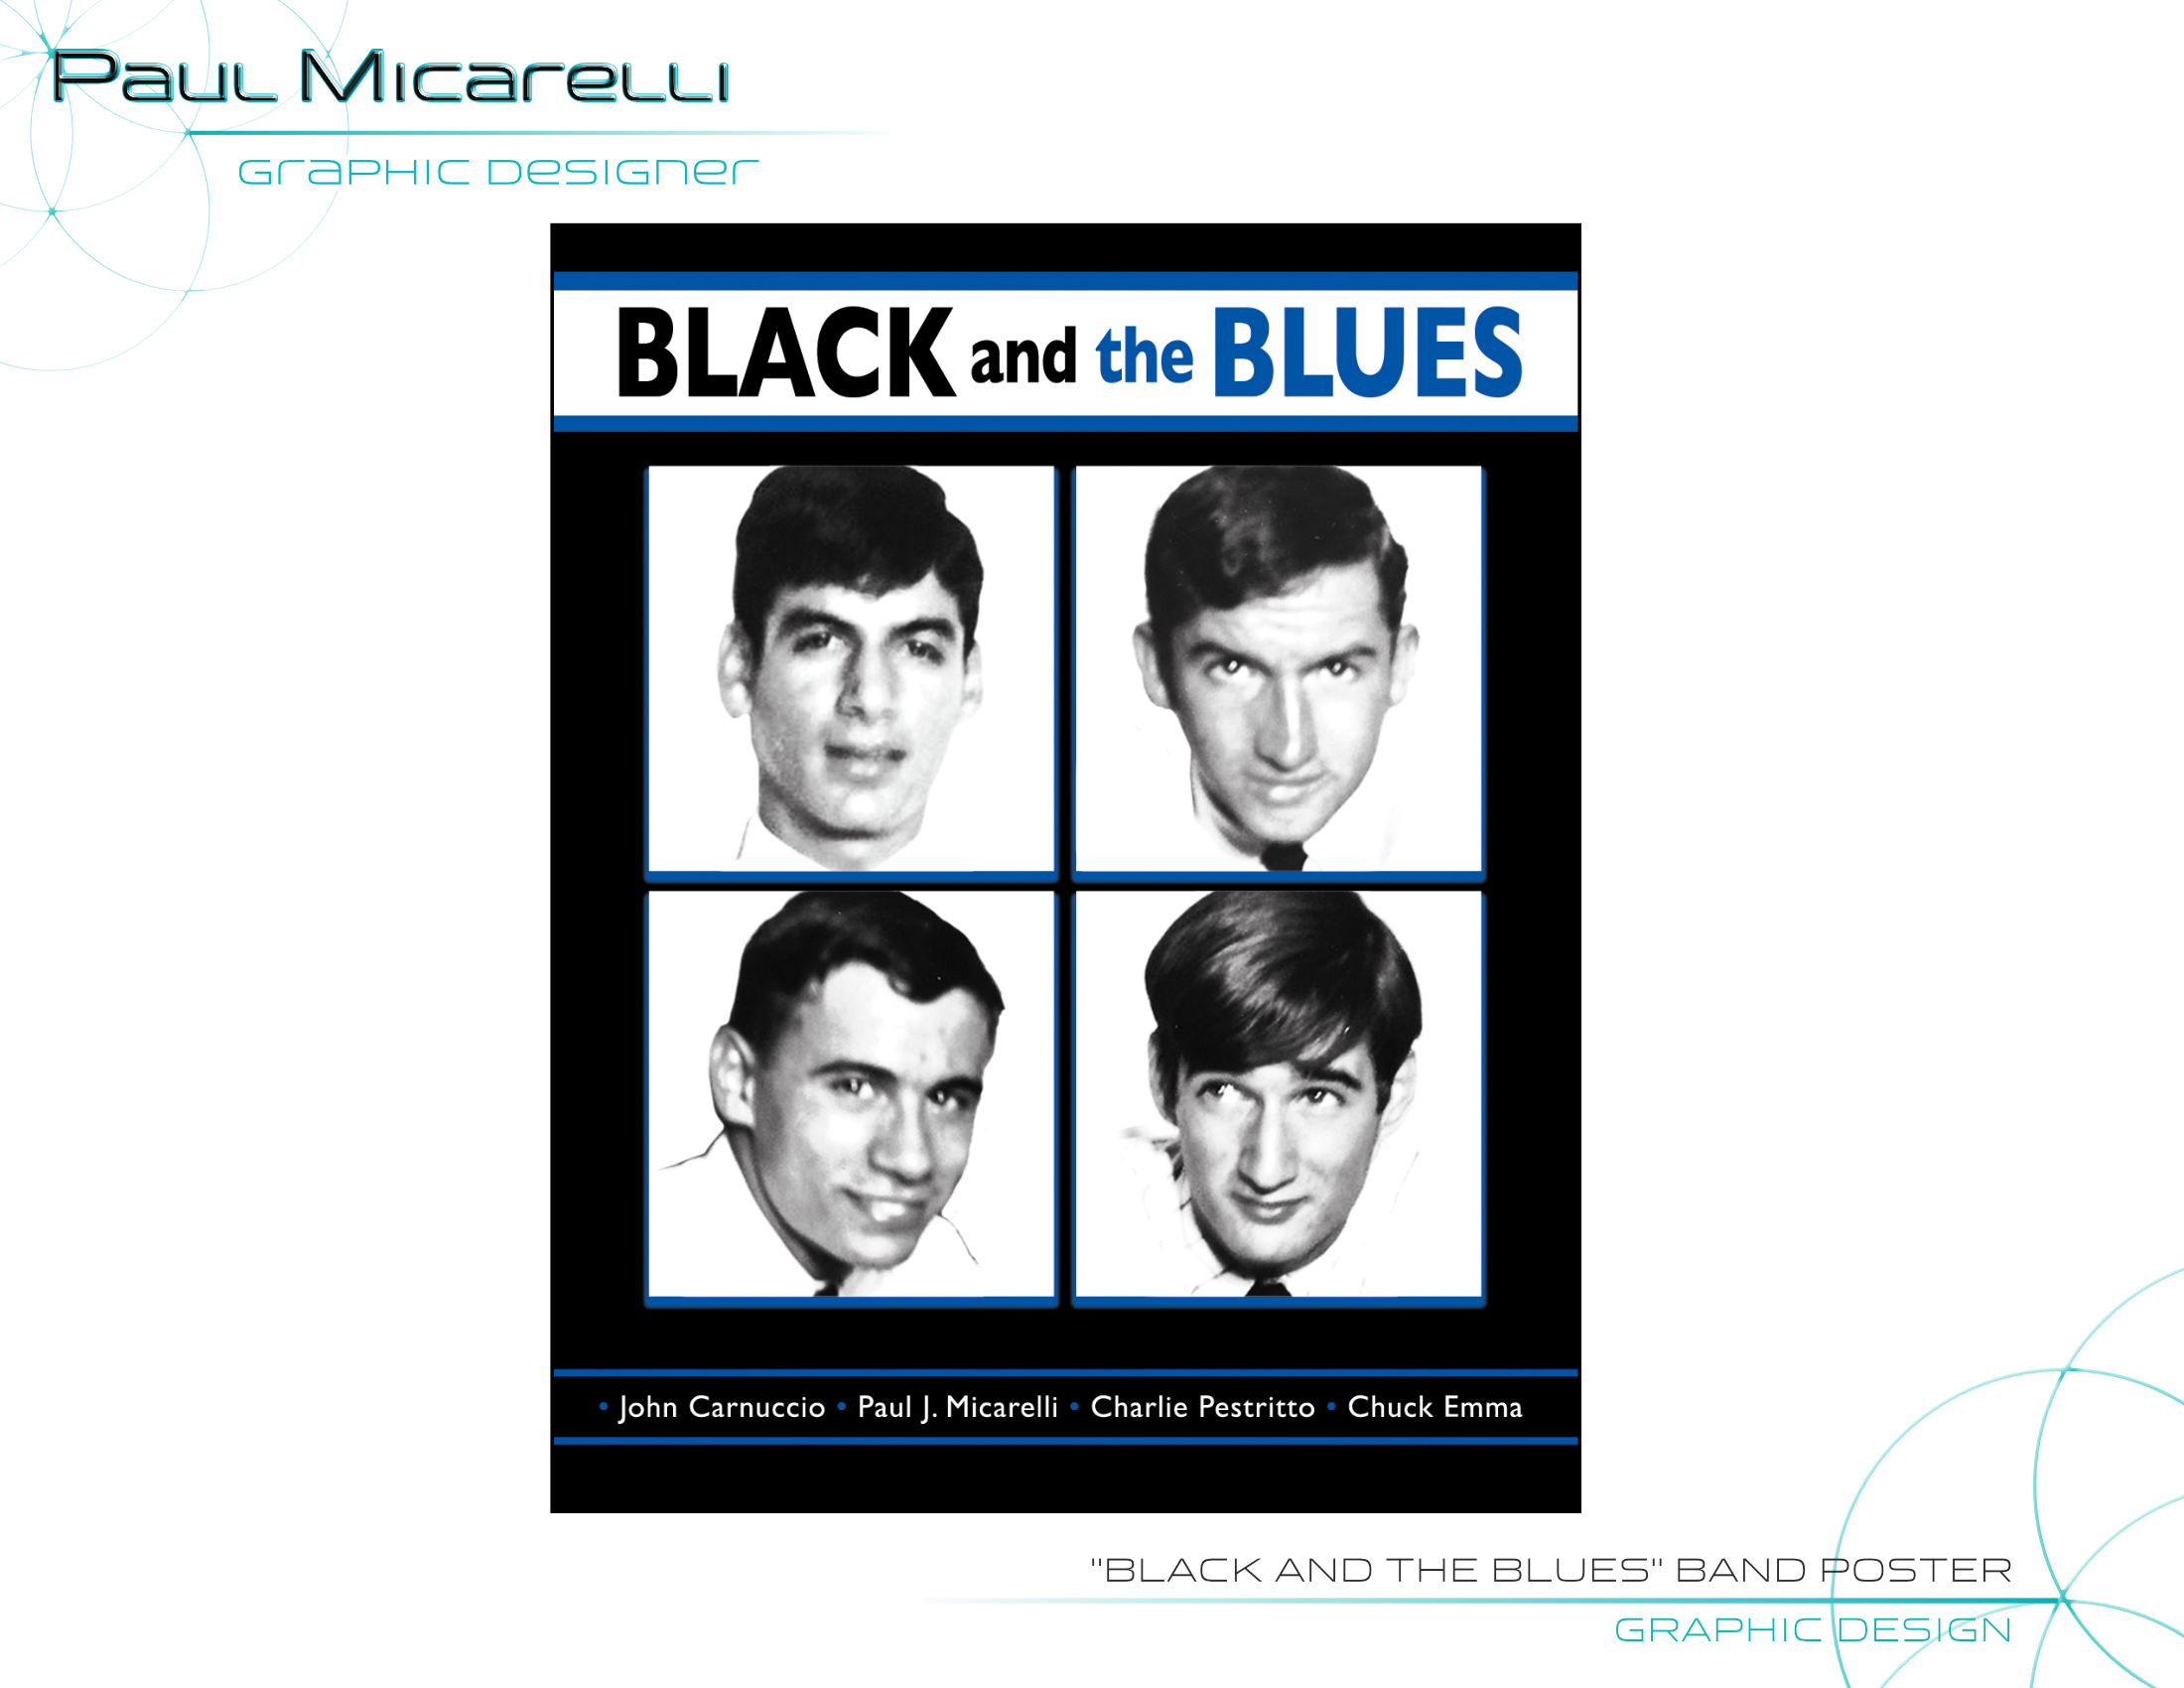 Paul-Micarelli-Black and the Blues Poste